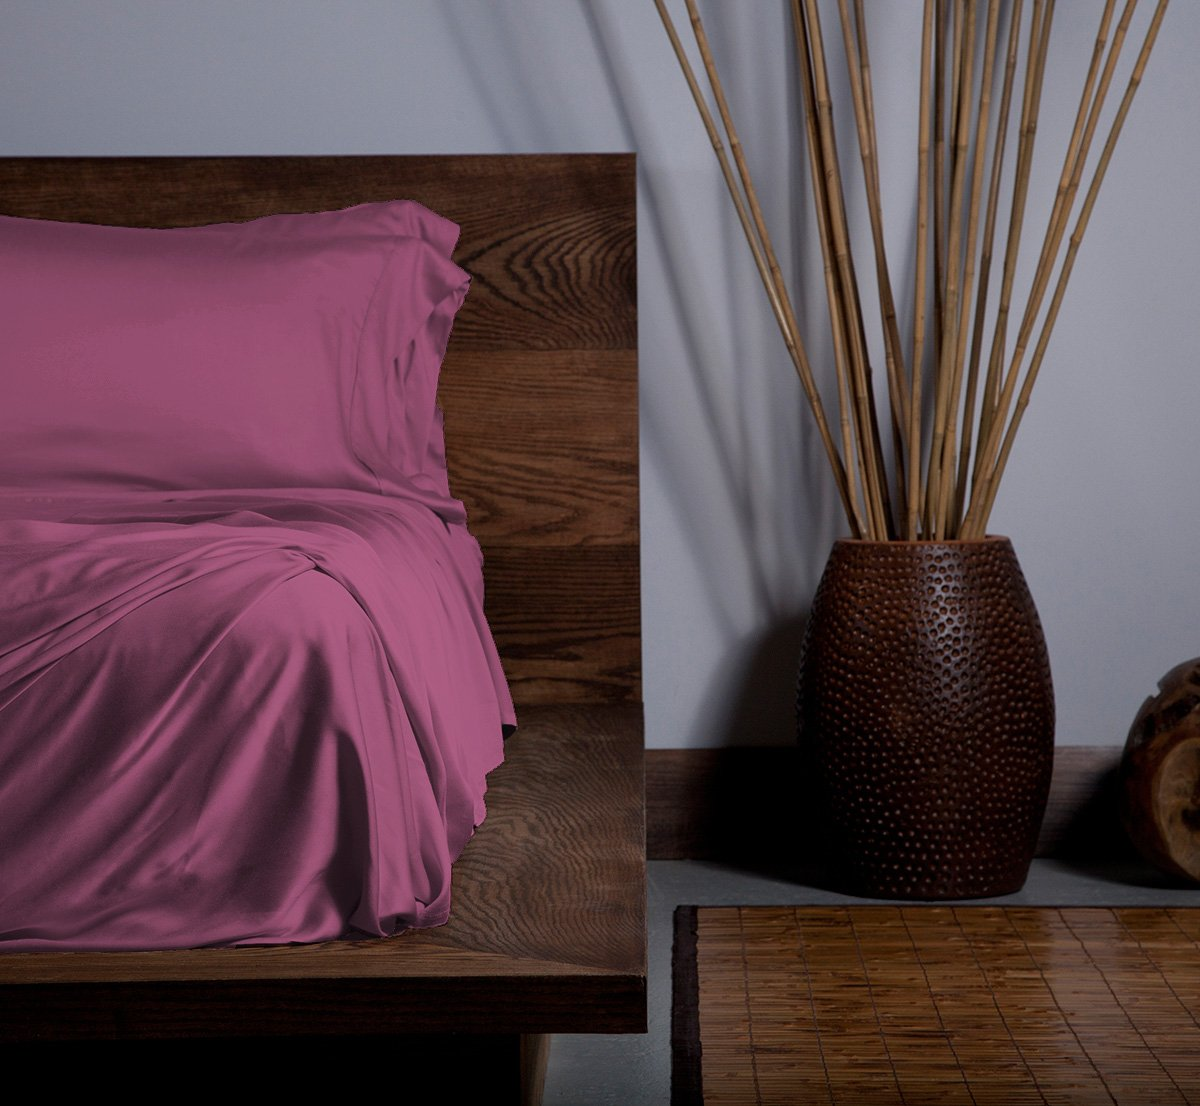 SHEEX ECOSHEEX Bamboo Origin Sheet Set with 2 Pillowcases, Amazingly Soft Luxury Sateen Sheets That Adapt to Your Body Temperature for Year-Round Comfort, Cranberry (California King)